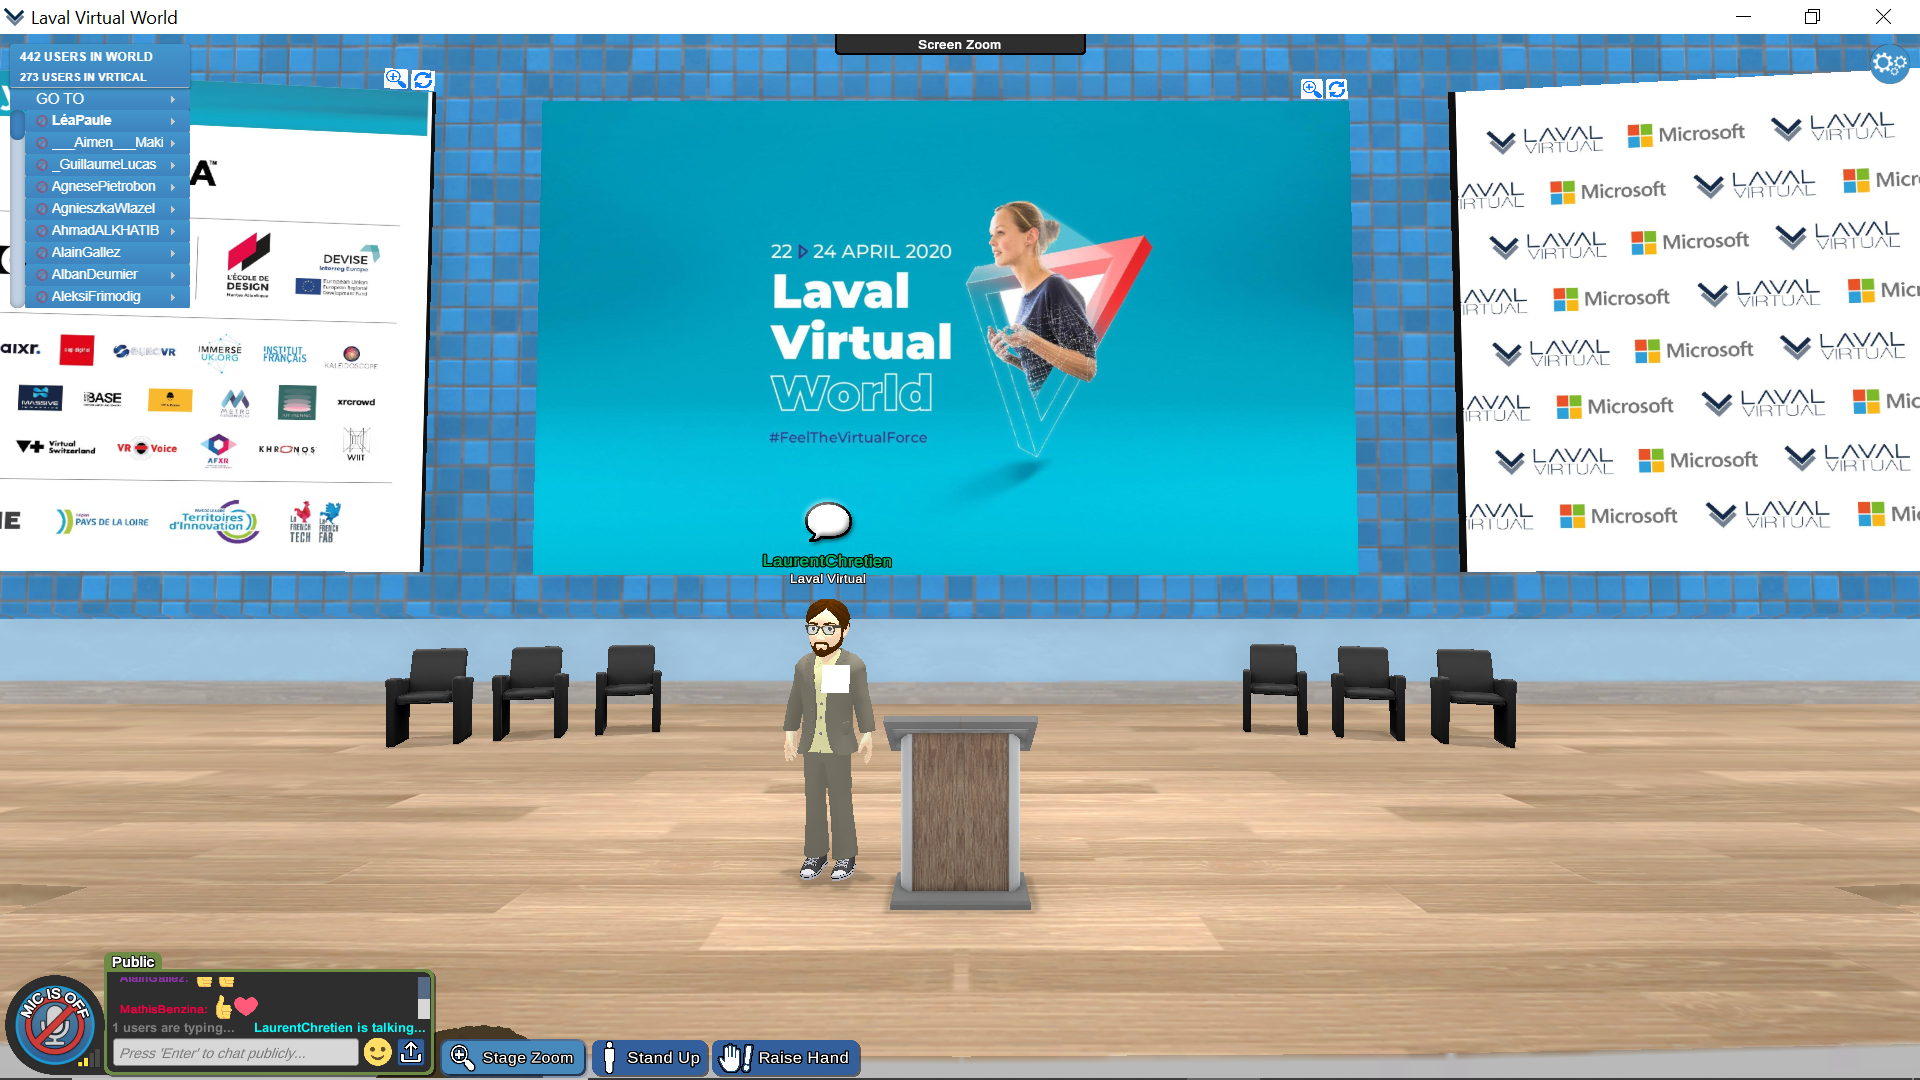 Laurent Chrétien in the Laval Virtual World